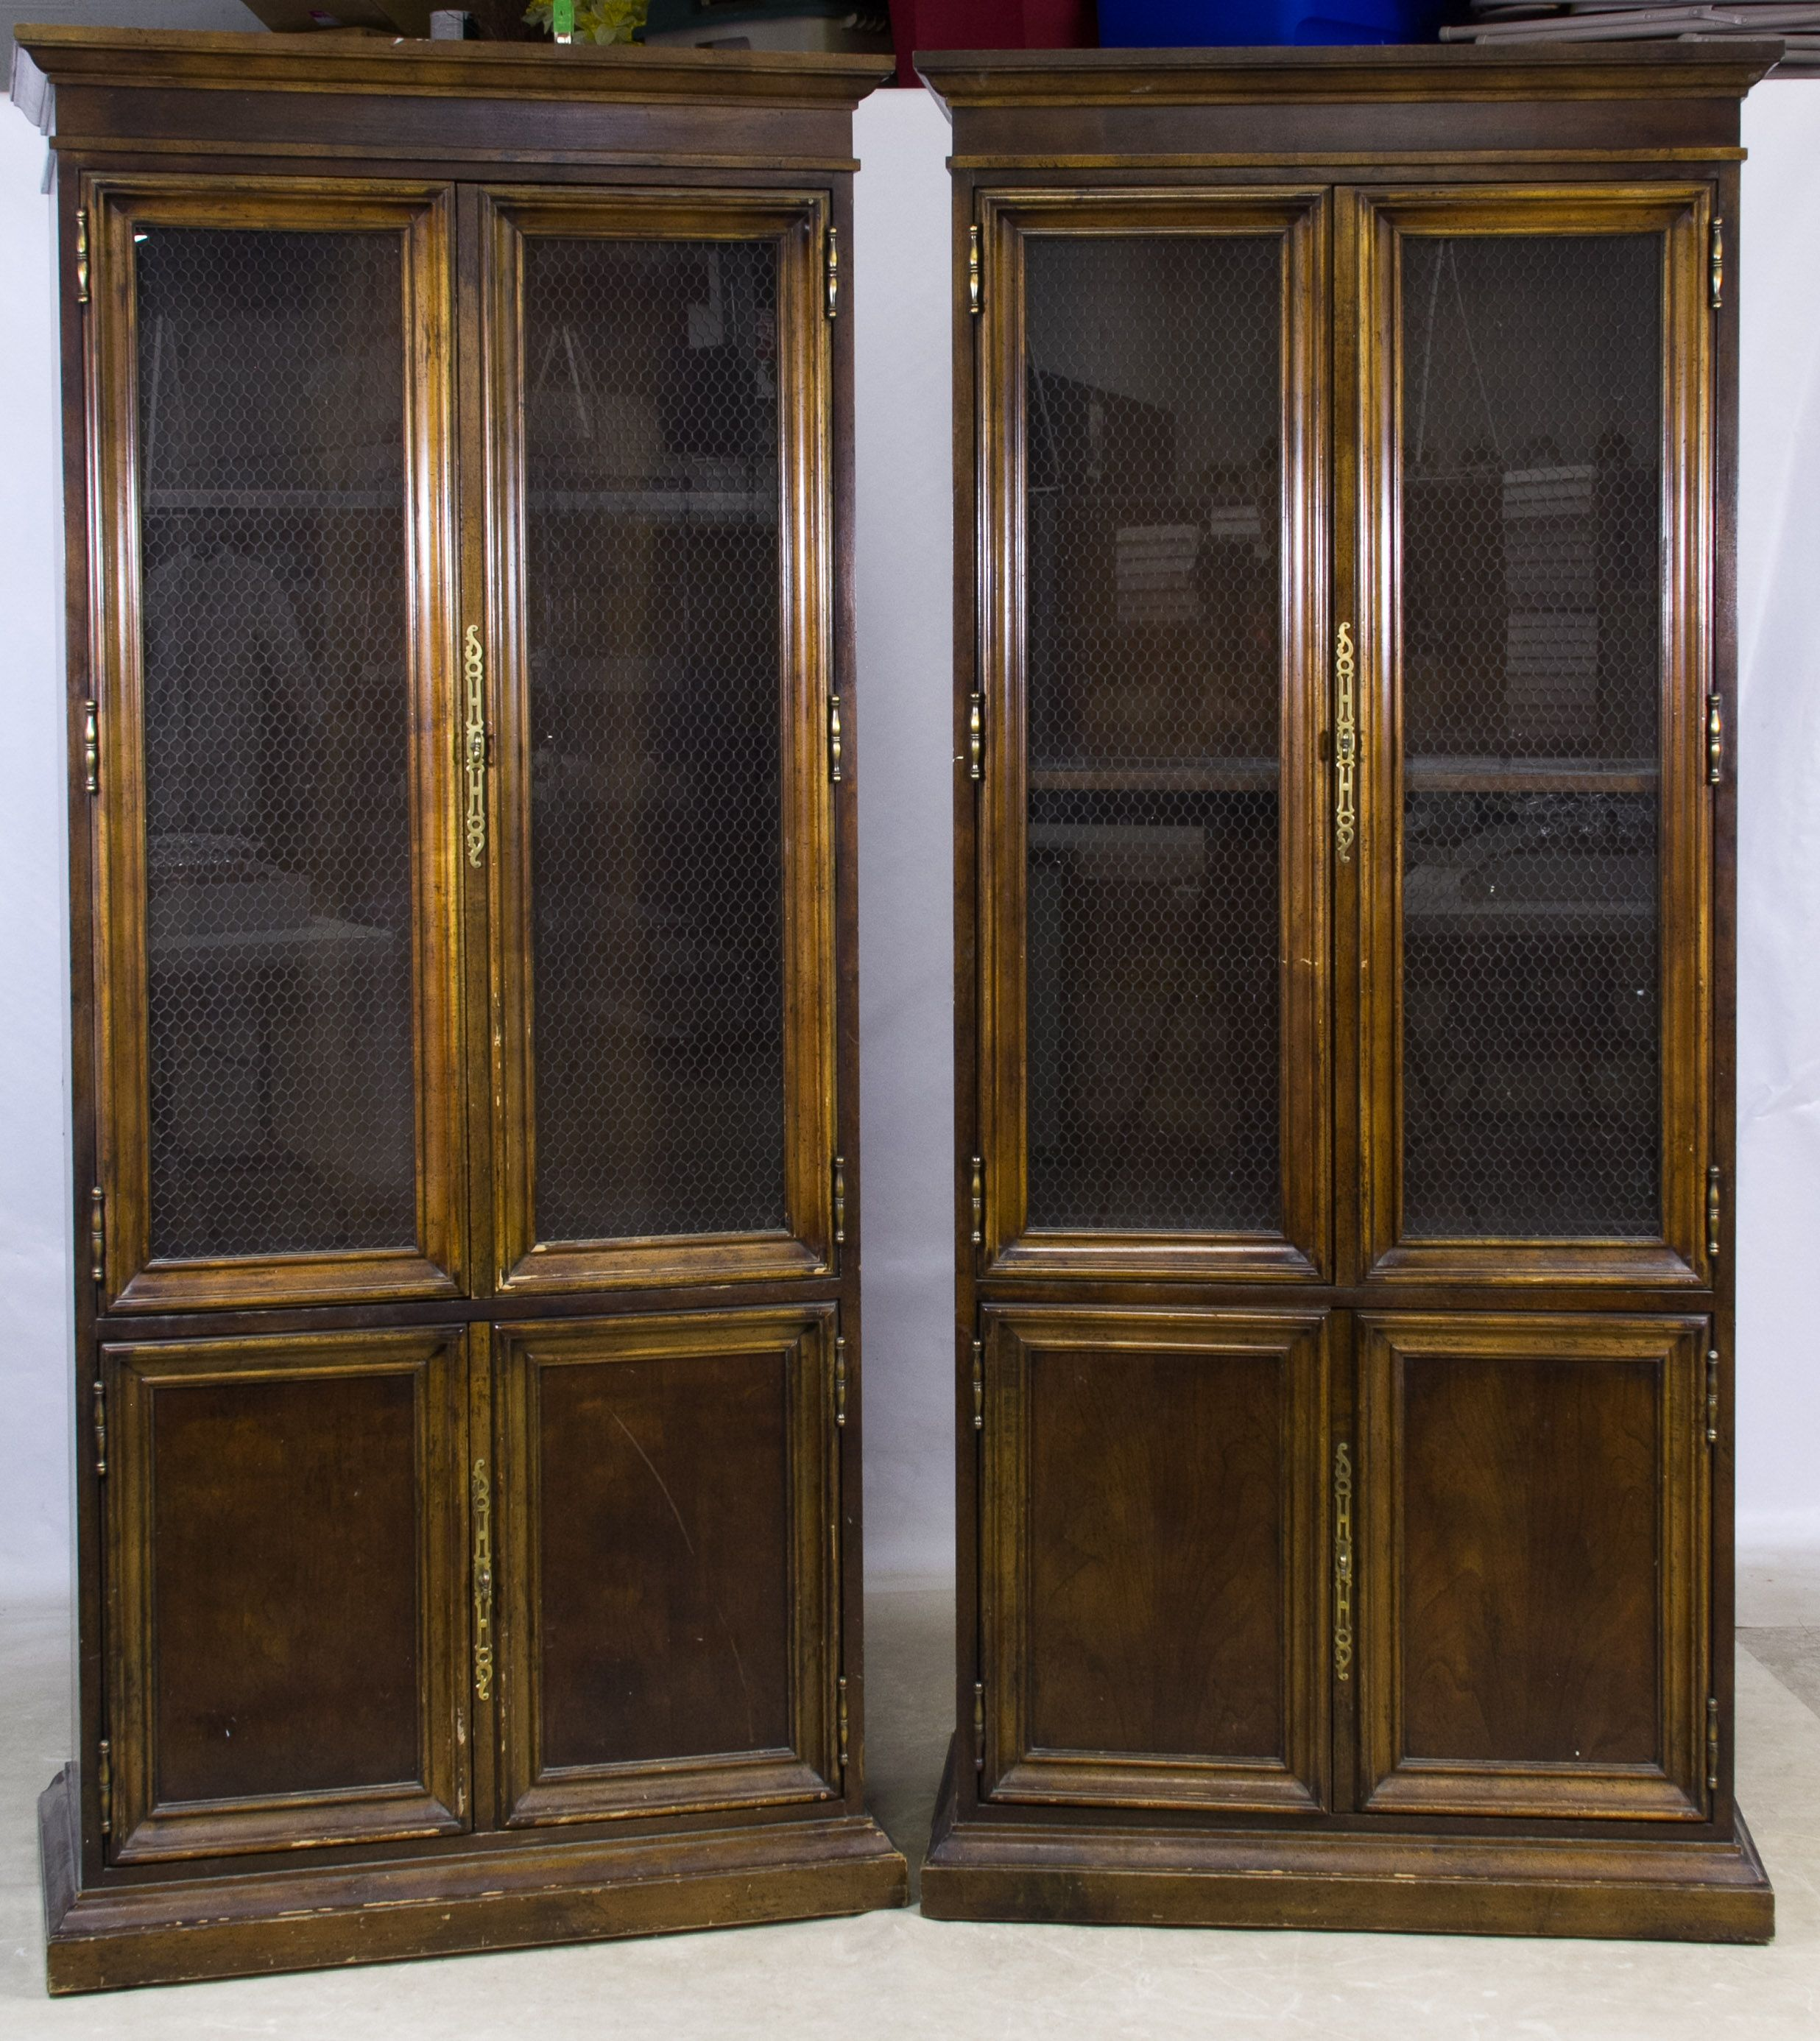 Lot 647 Walnut Display Cabinets Matching pair having double wood